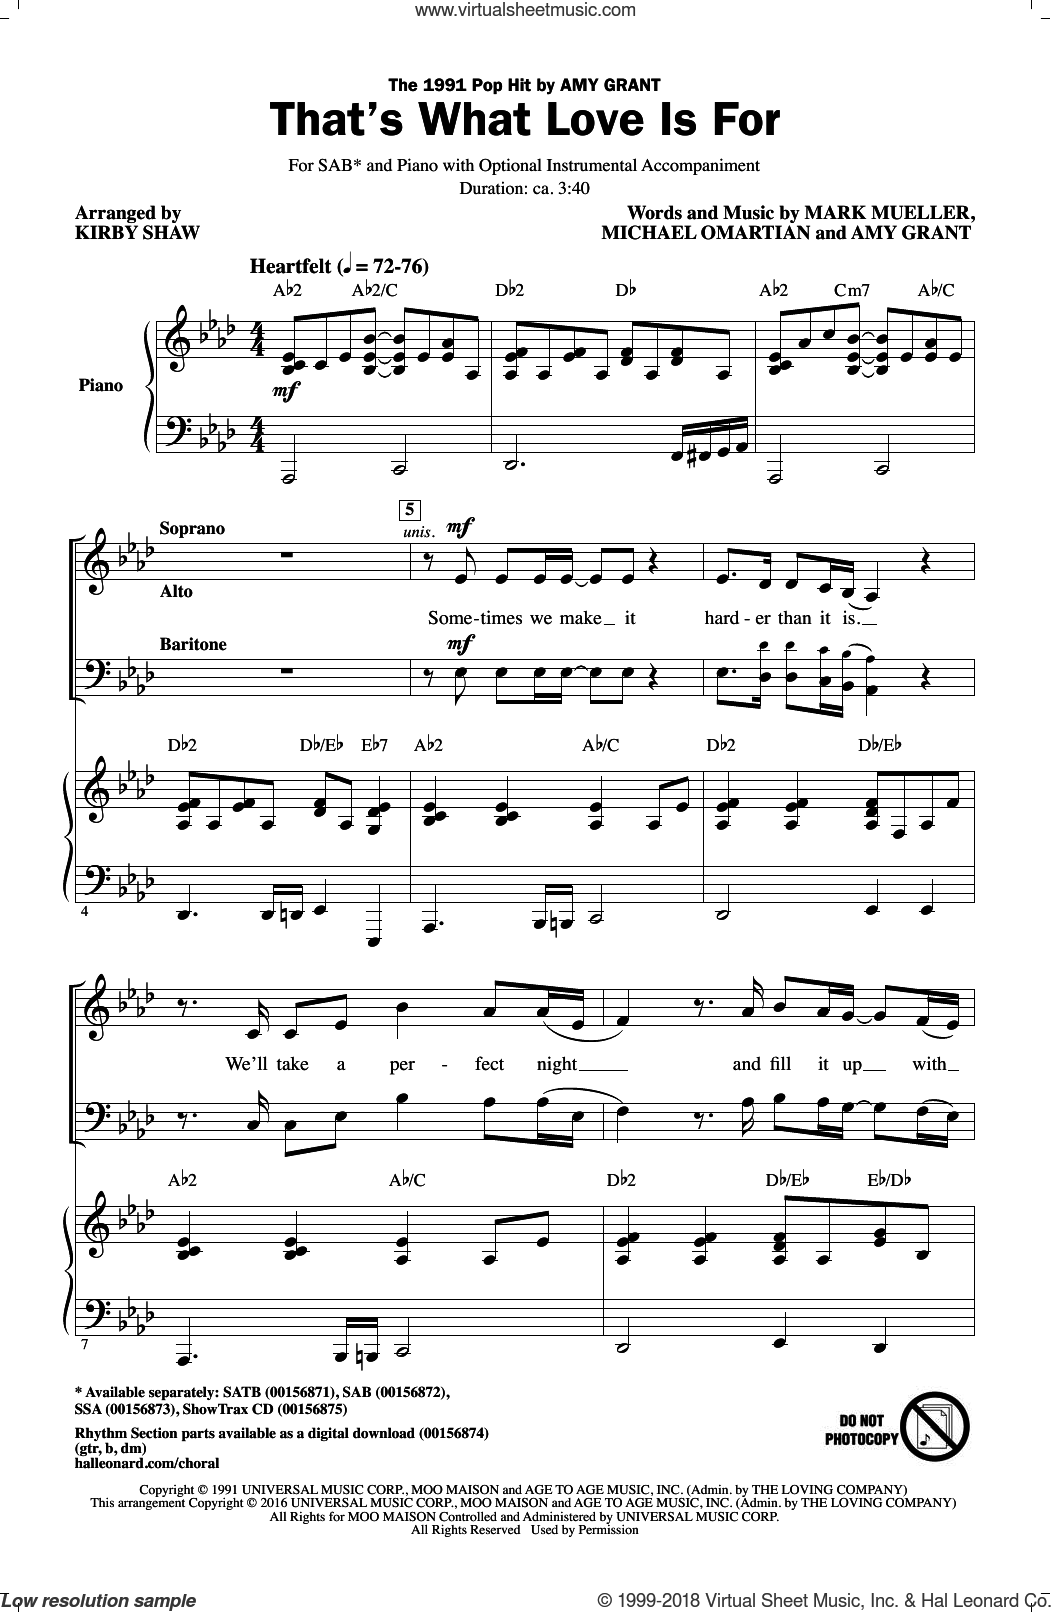 That's What Love Is For sheet music for choir and piano (SAB) by Kirby Shaw, Amy Grant, Mark Mueller and Michael Omartian. Score Image Preview.